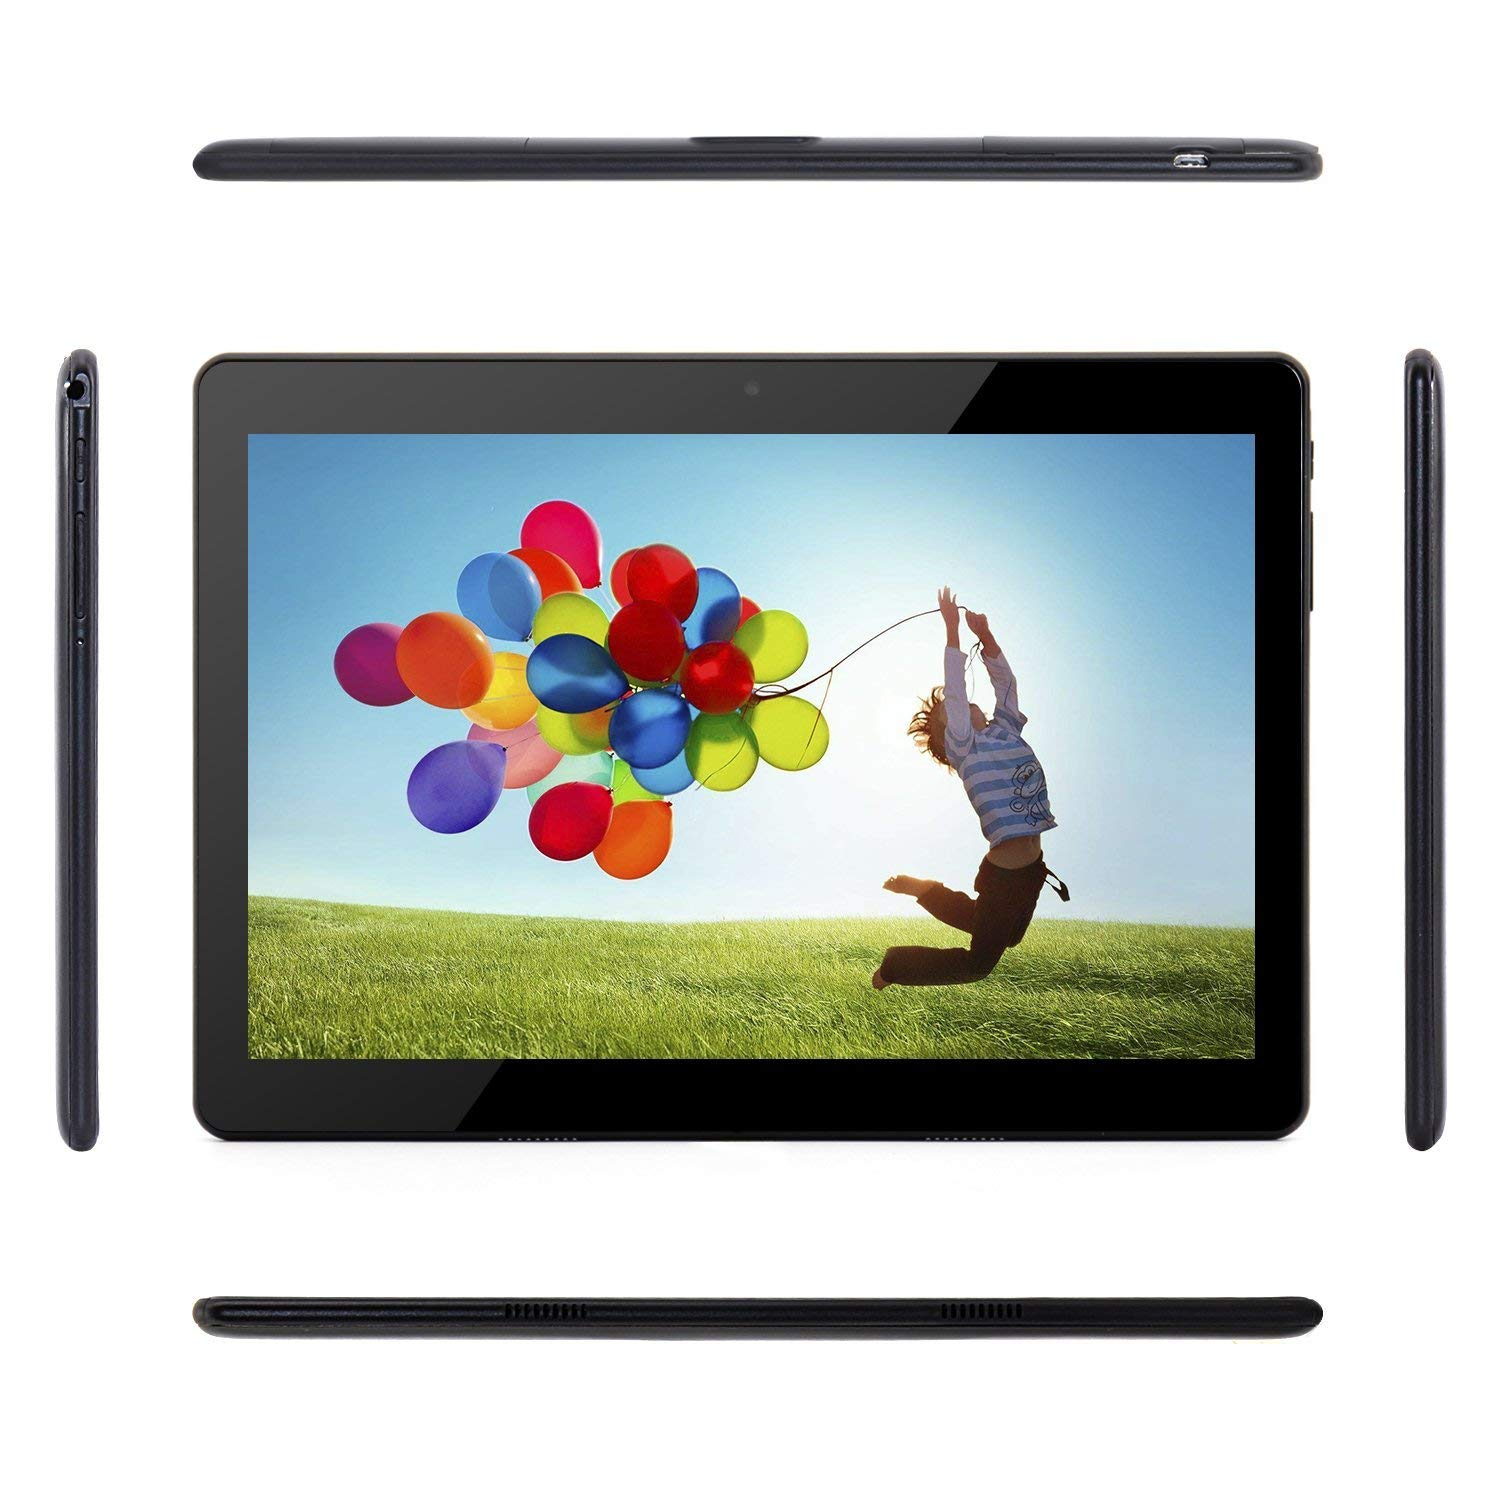 Tablet Android 10 Inch Unlocked 3G Phablet Tablet PC with Dual SIM Card Slots Dual Camera WiFi Bluetooth GPS 16GB MTK6580 1.3GHz IPS Screen 800x1280 - Black